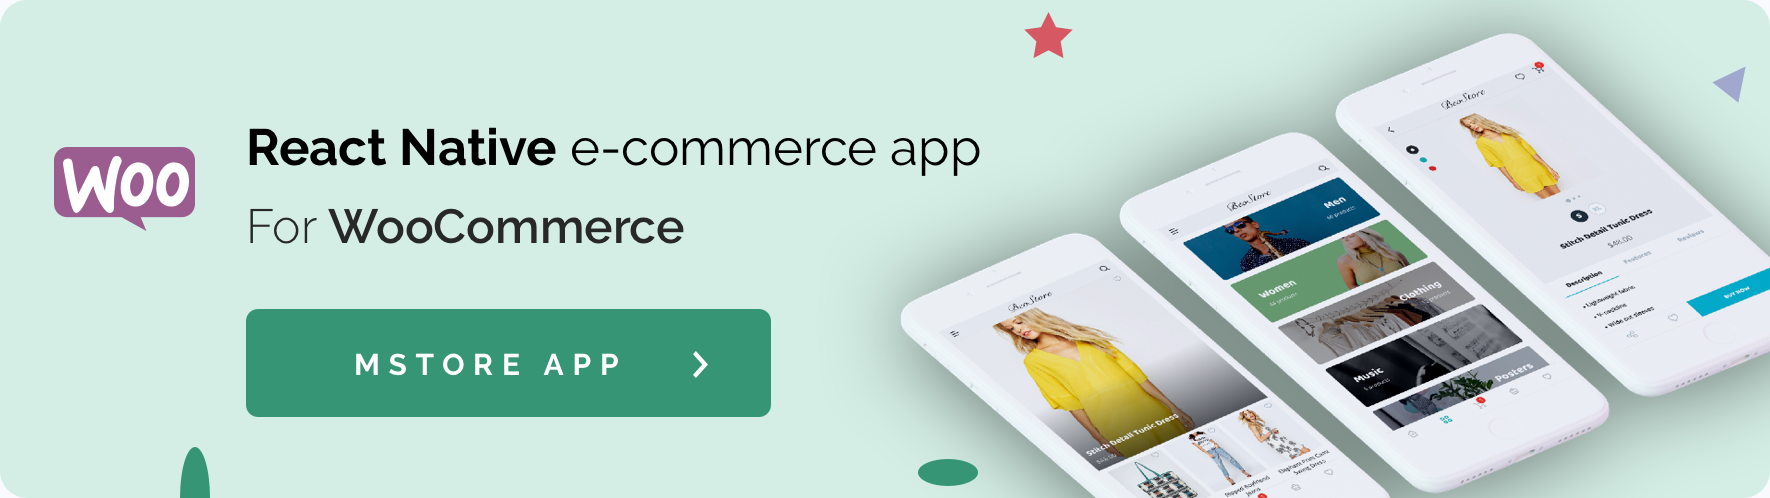 CeStore - ReactJS web app & React Native mobile app for e-commerce - 16